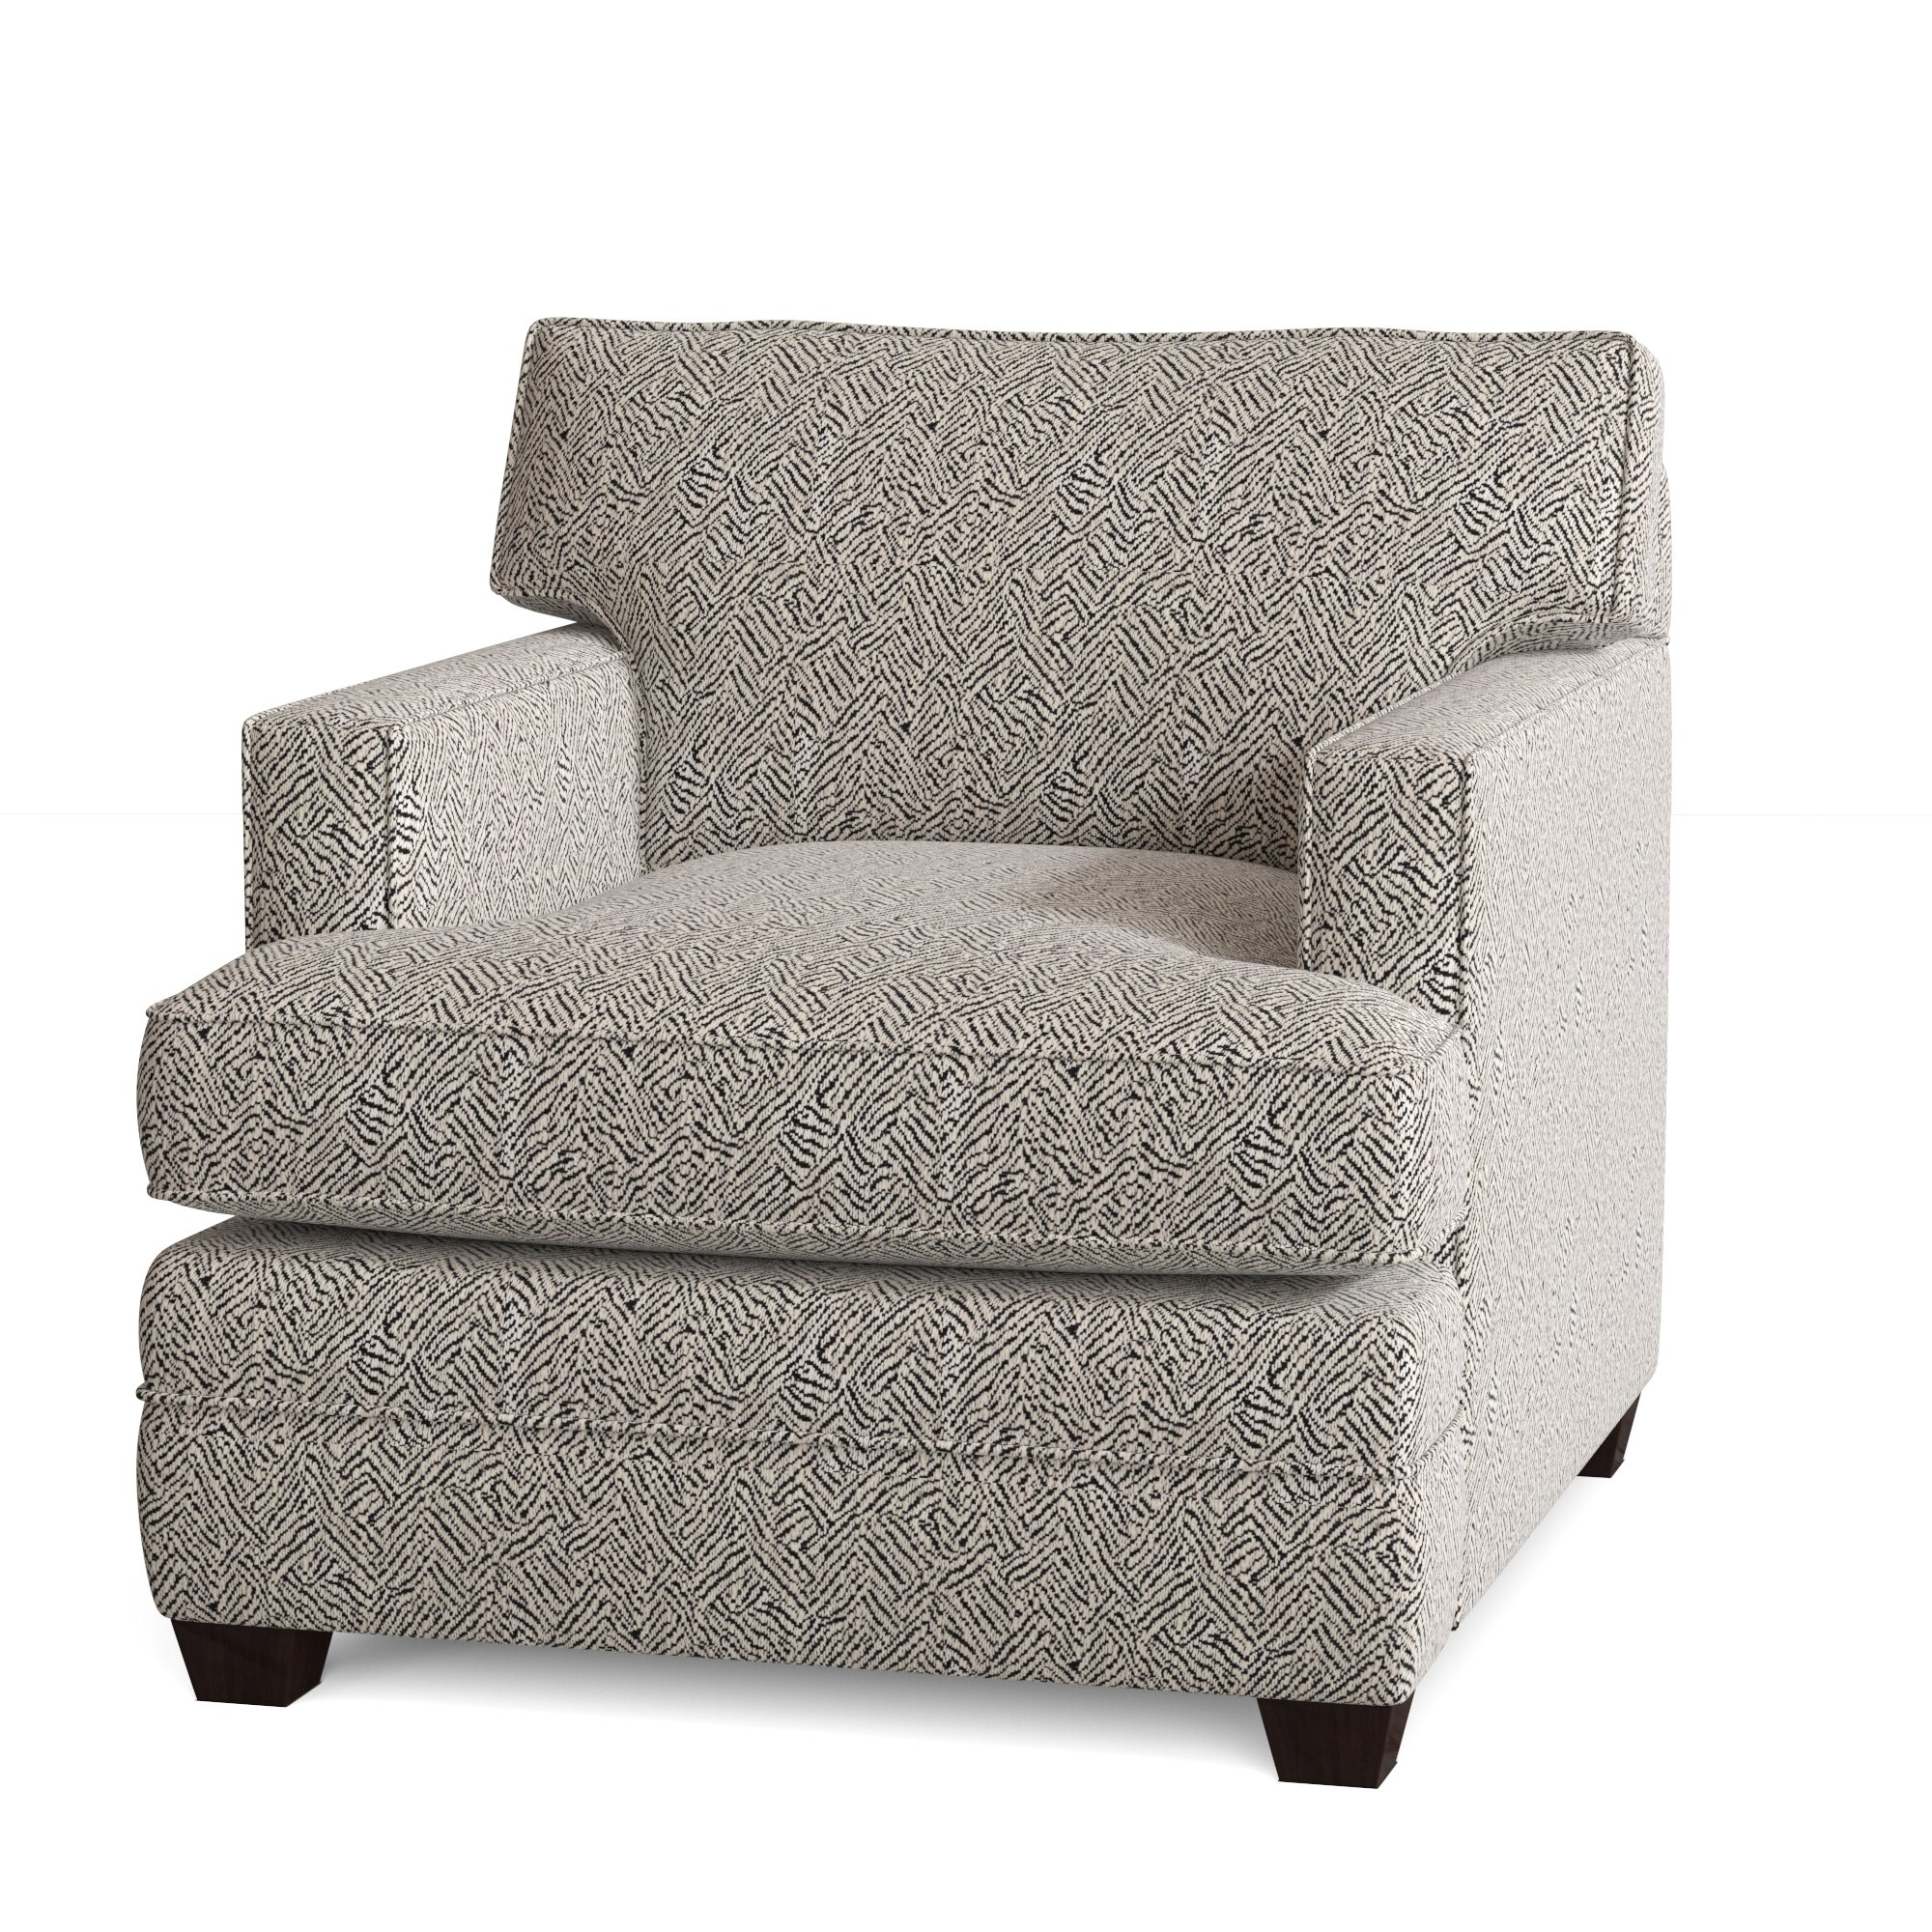 2020 Brookhhurst Avina Armchairs Inside Black Silver Accent Chairs You'll Love In (View 17 of 20)